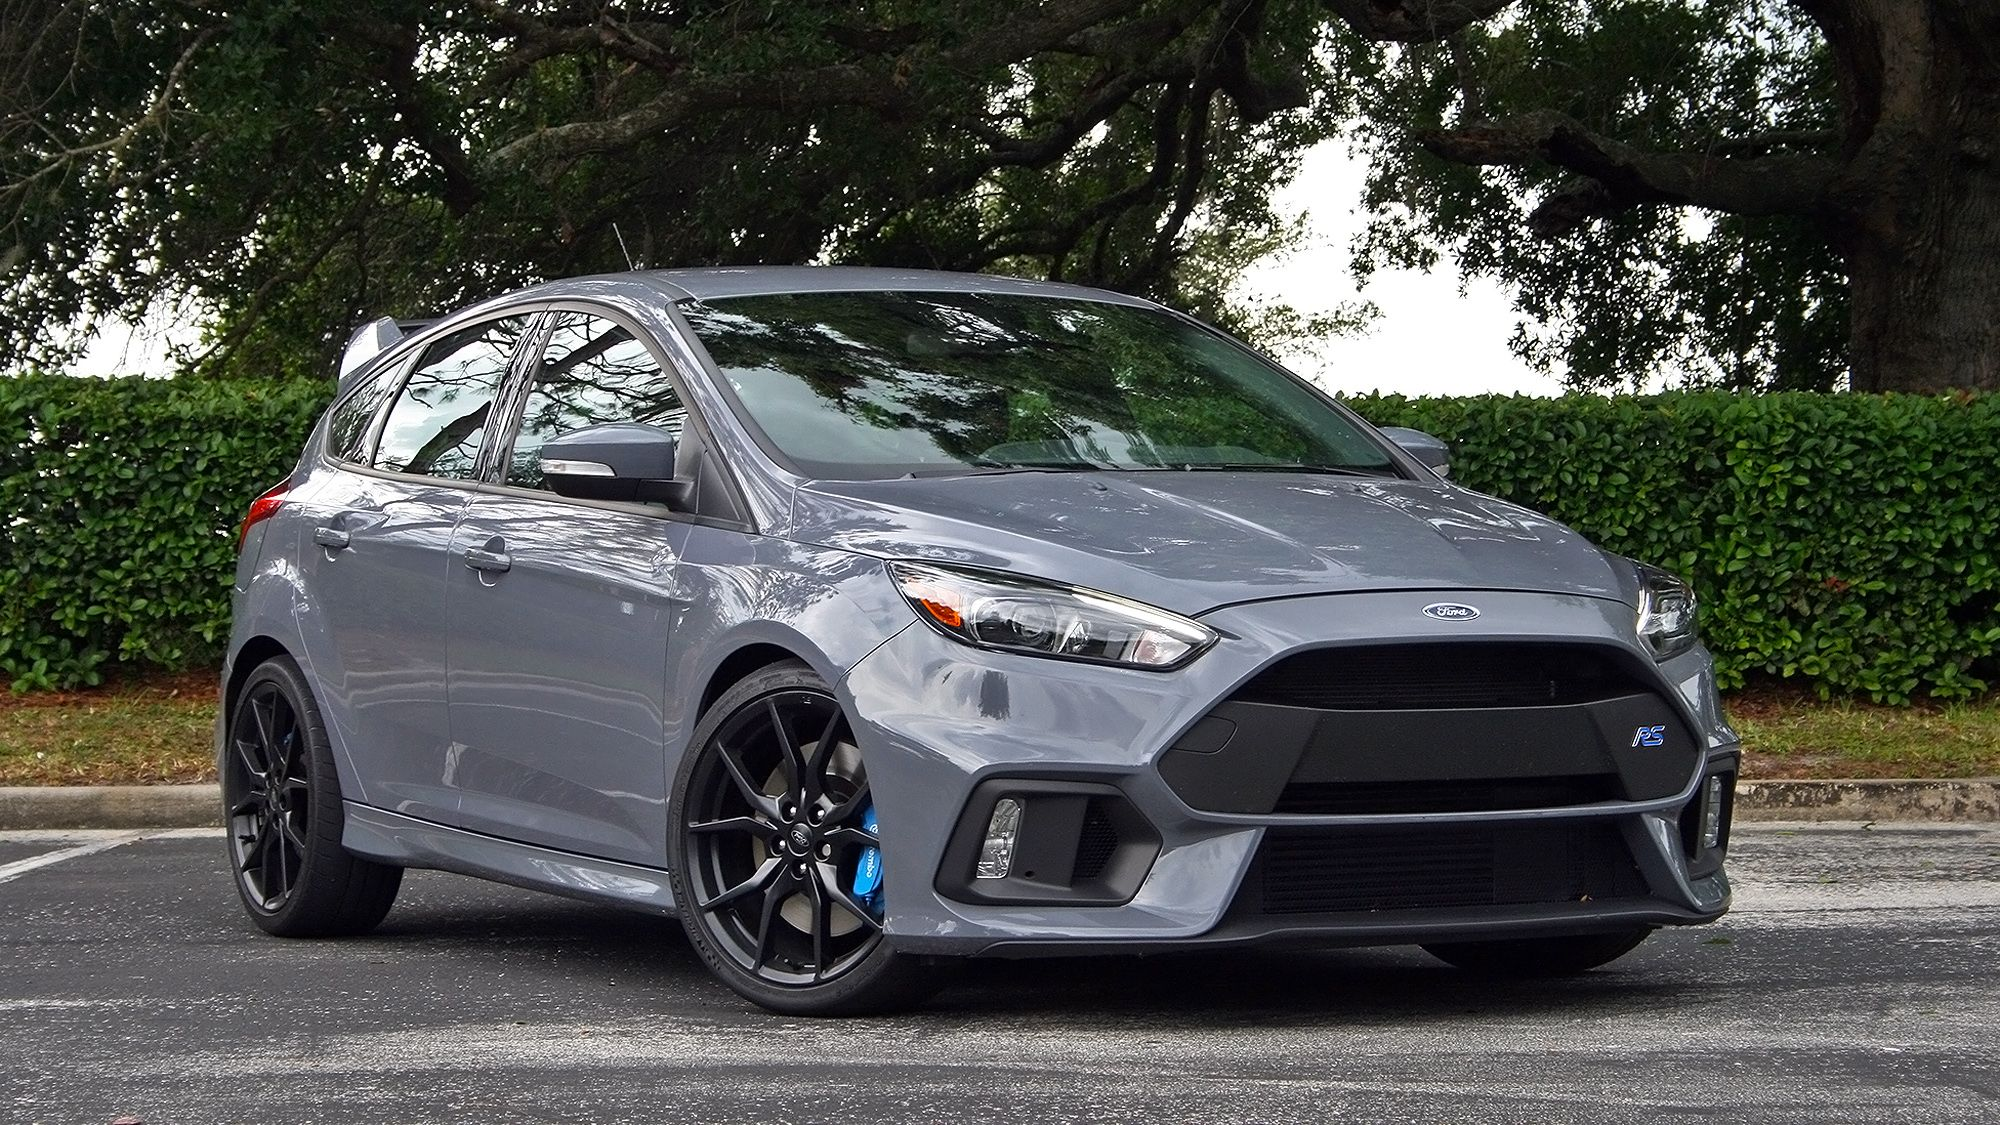 Ford Just Cancelled The Fourth Gen 2022 Focus Rs Top Speed In